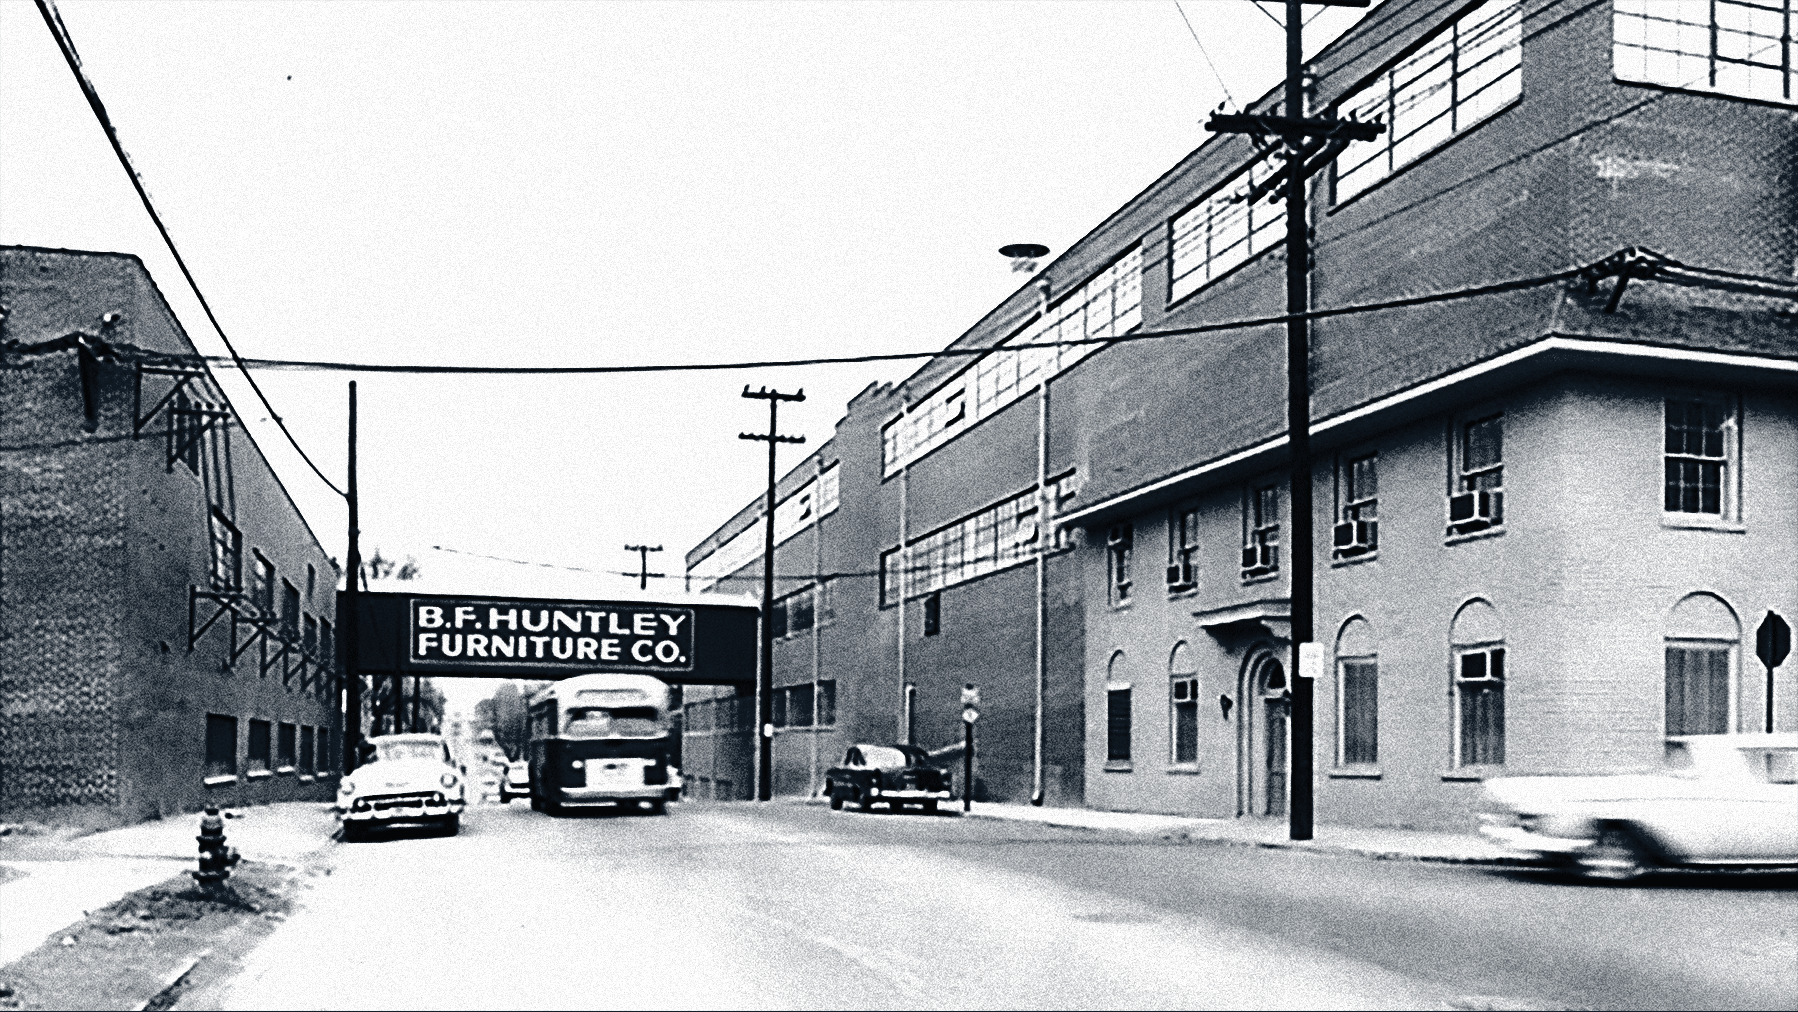 B.F. Huntley Furniture Co